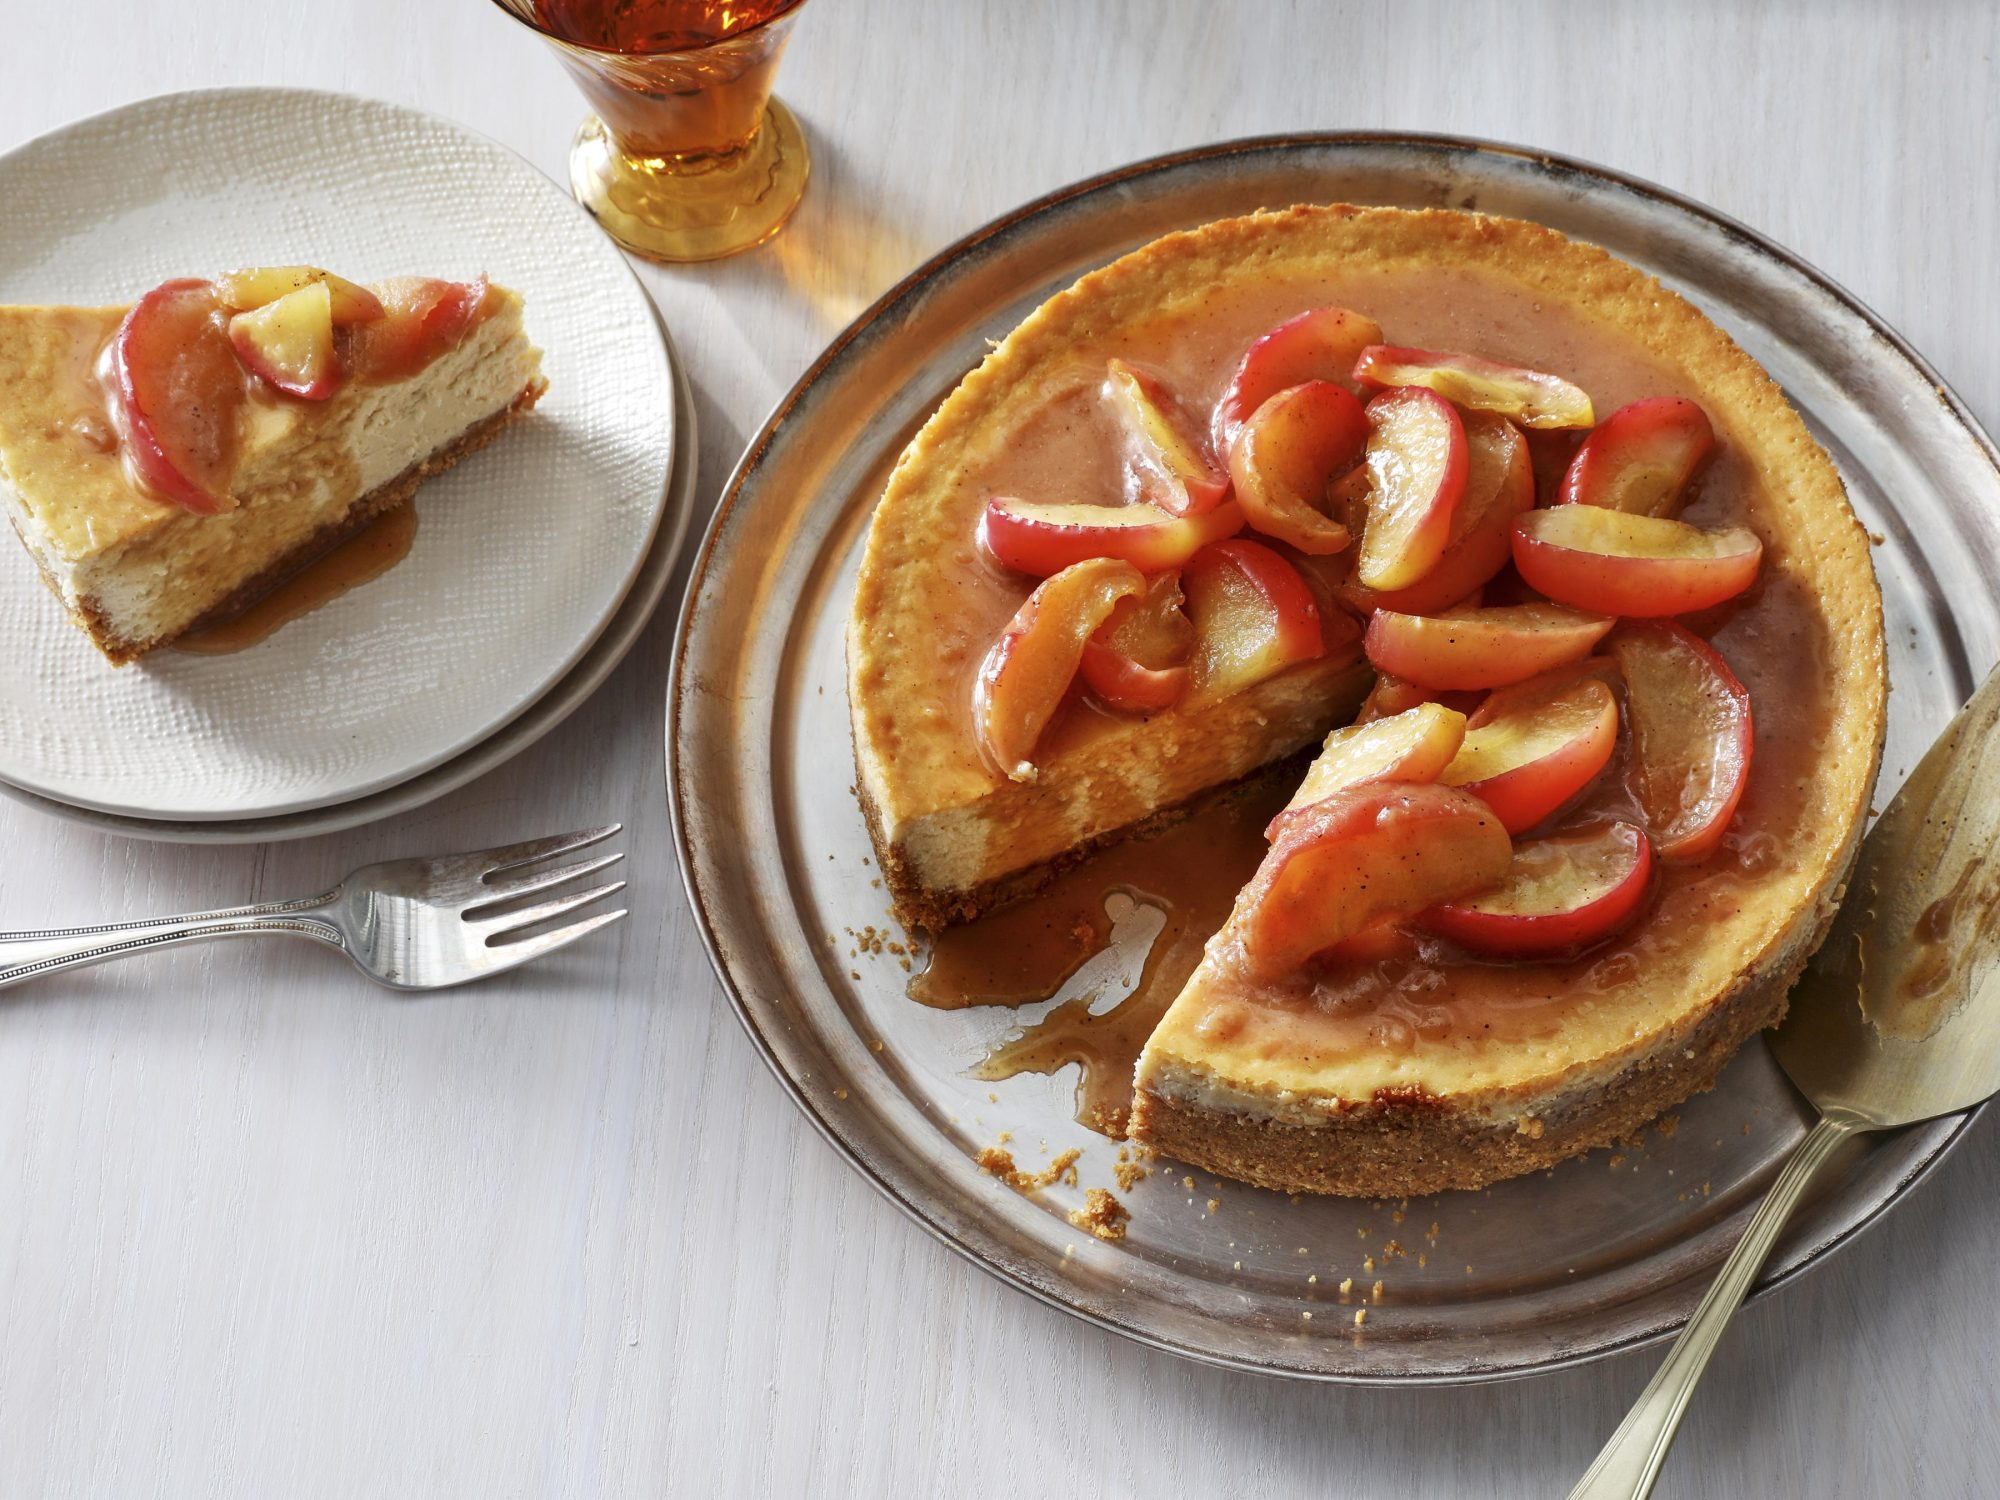 mr - Apple Pie Cheesecake Image.jpg